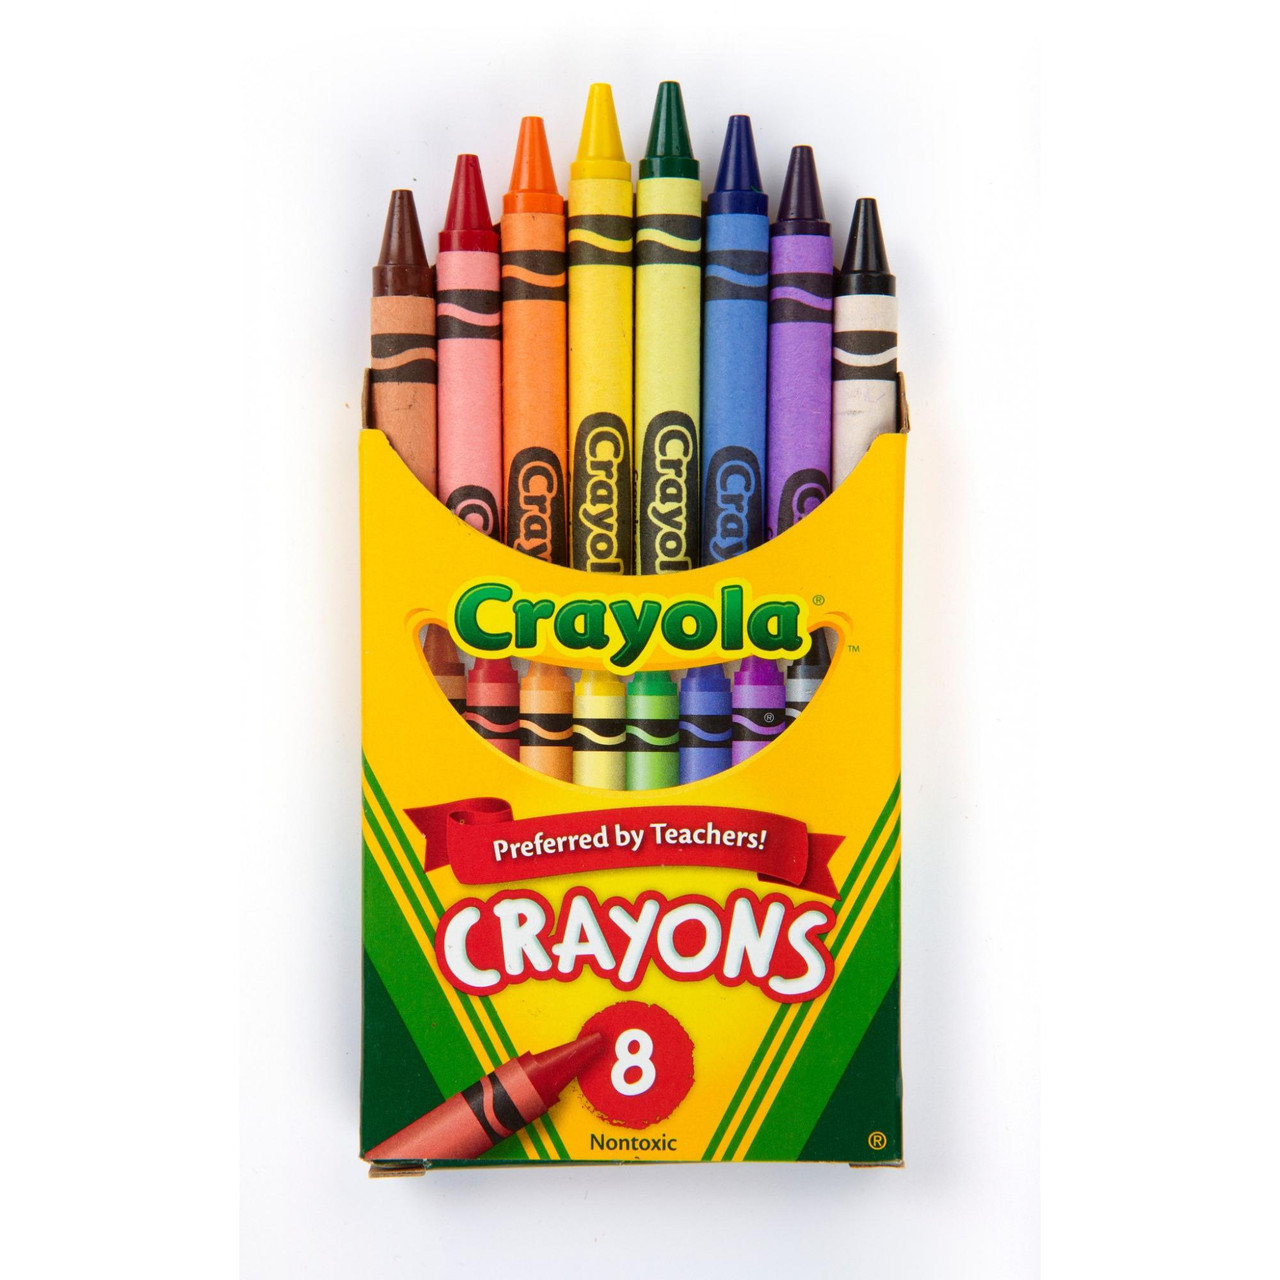 Crayola Classic Crayons, School Supplies, 8 Count  - *Ships from Miami*